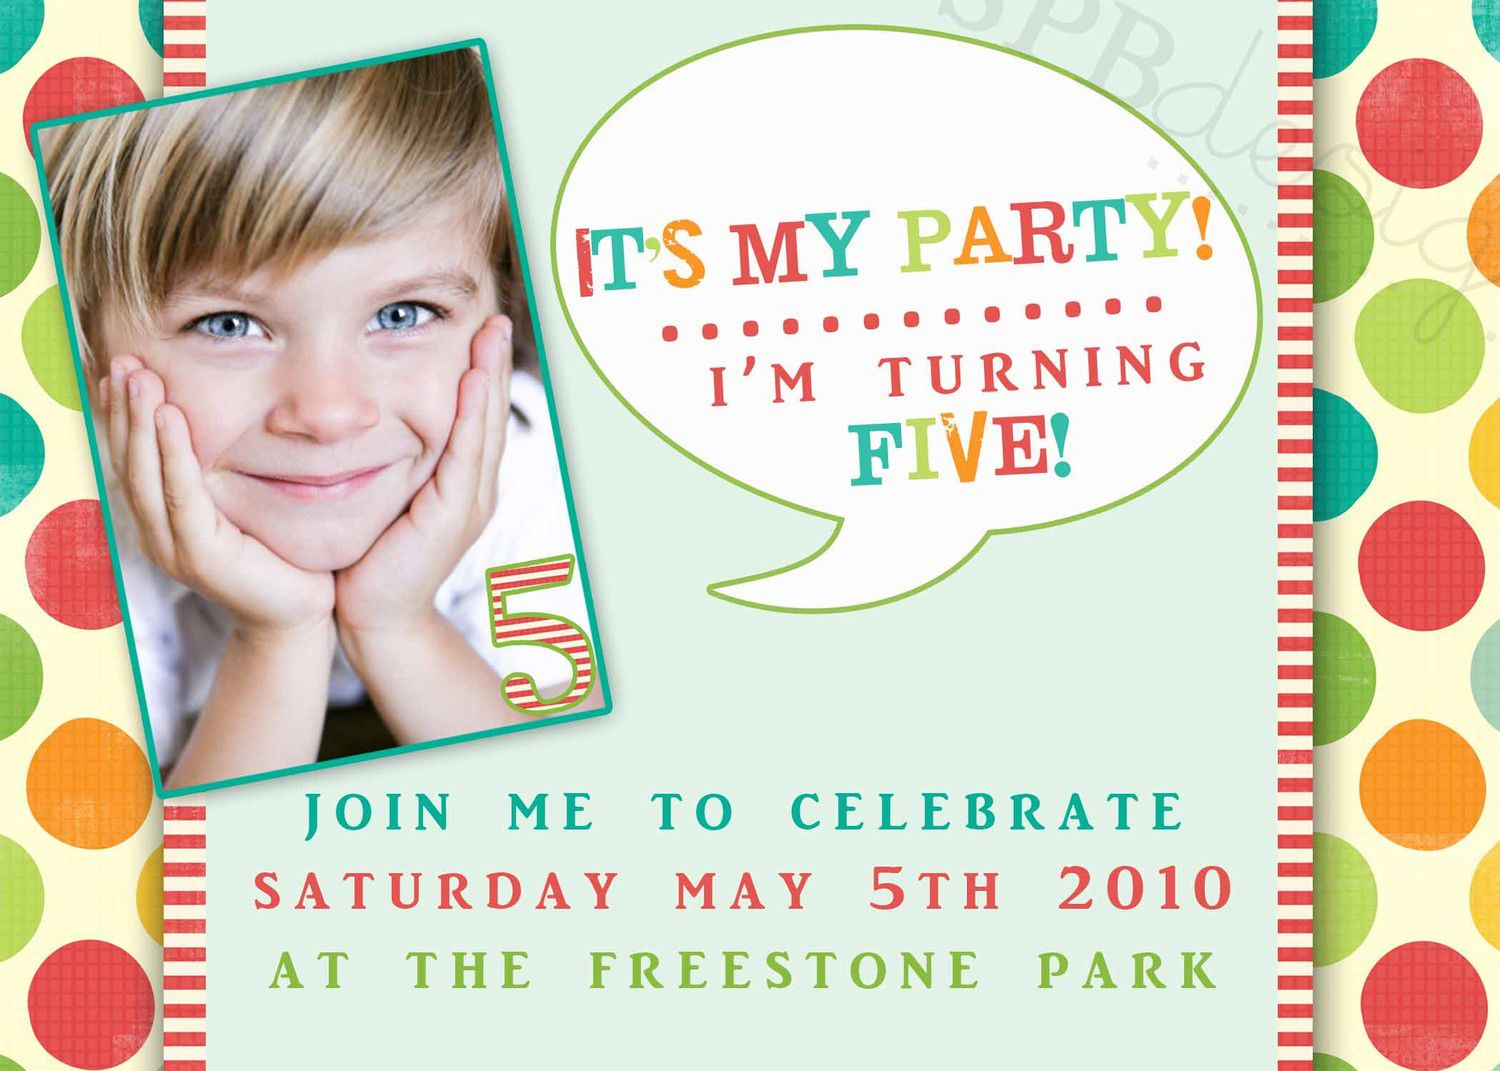 birthday invitation message for 1 year old ; birthday-invitation-wording-for-1-year-old-boy